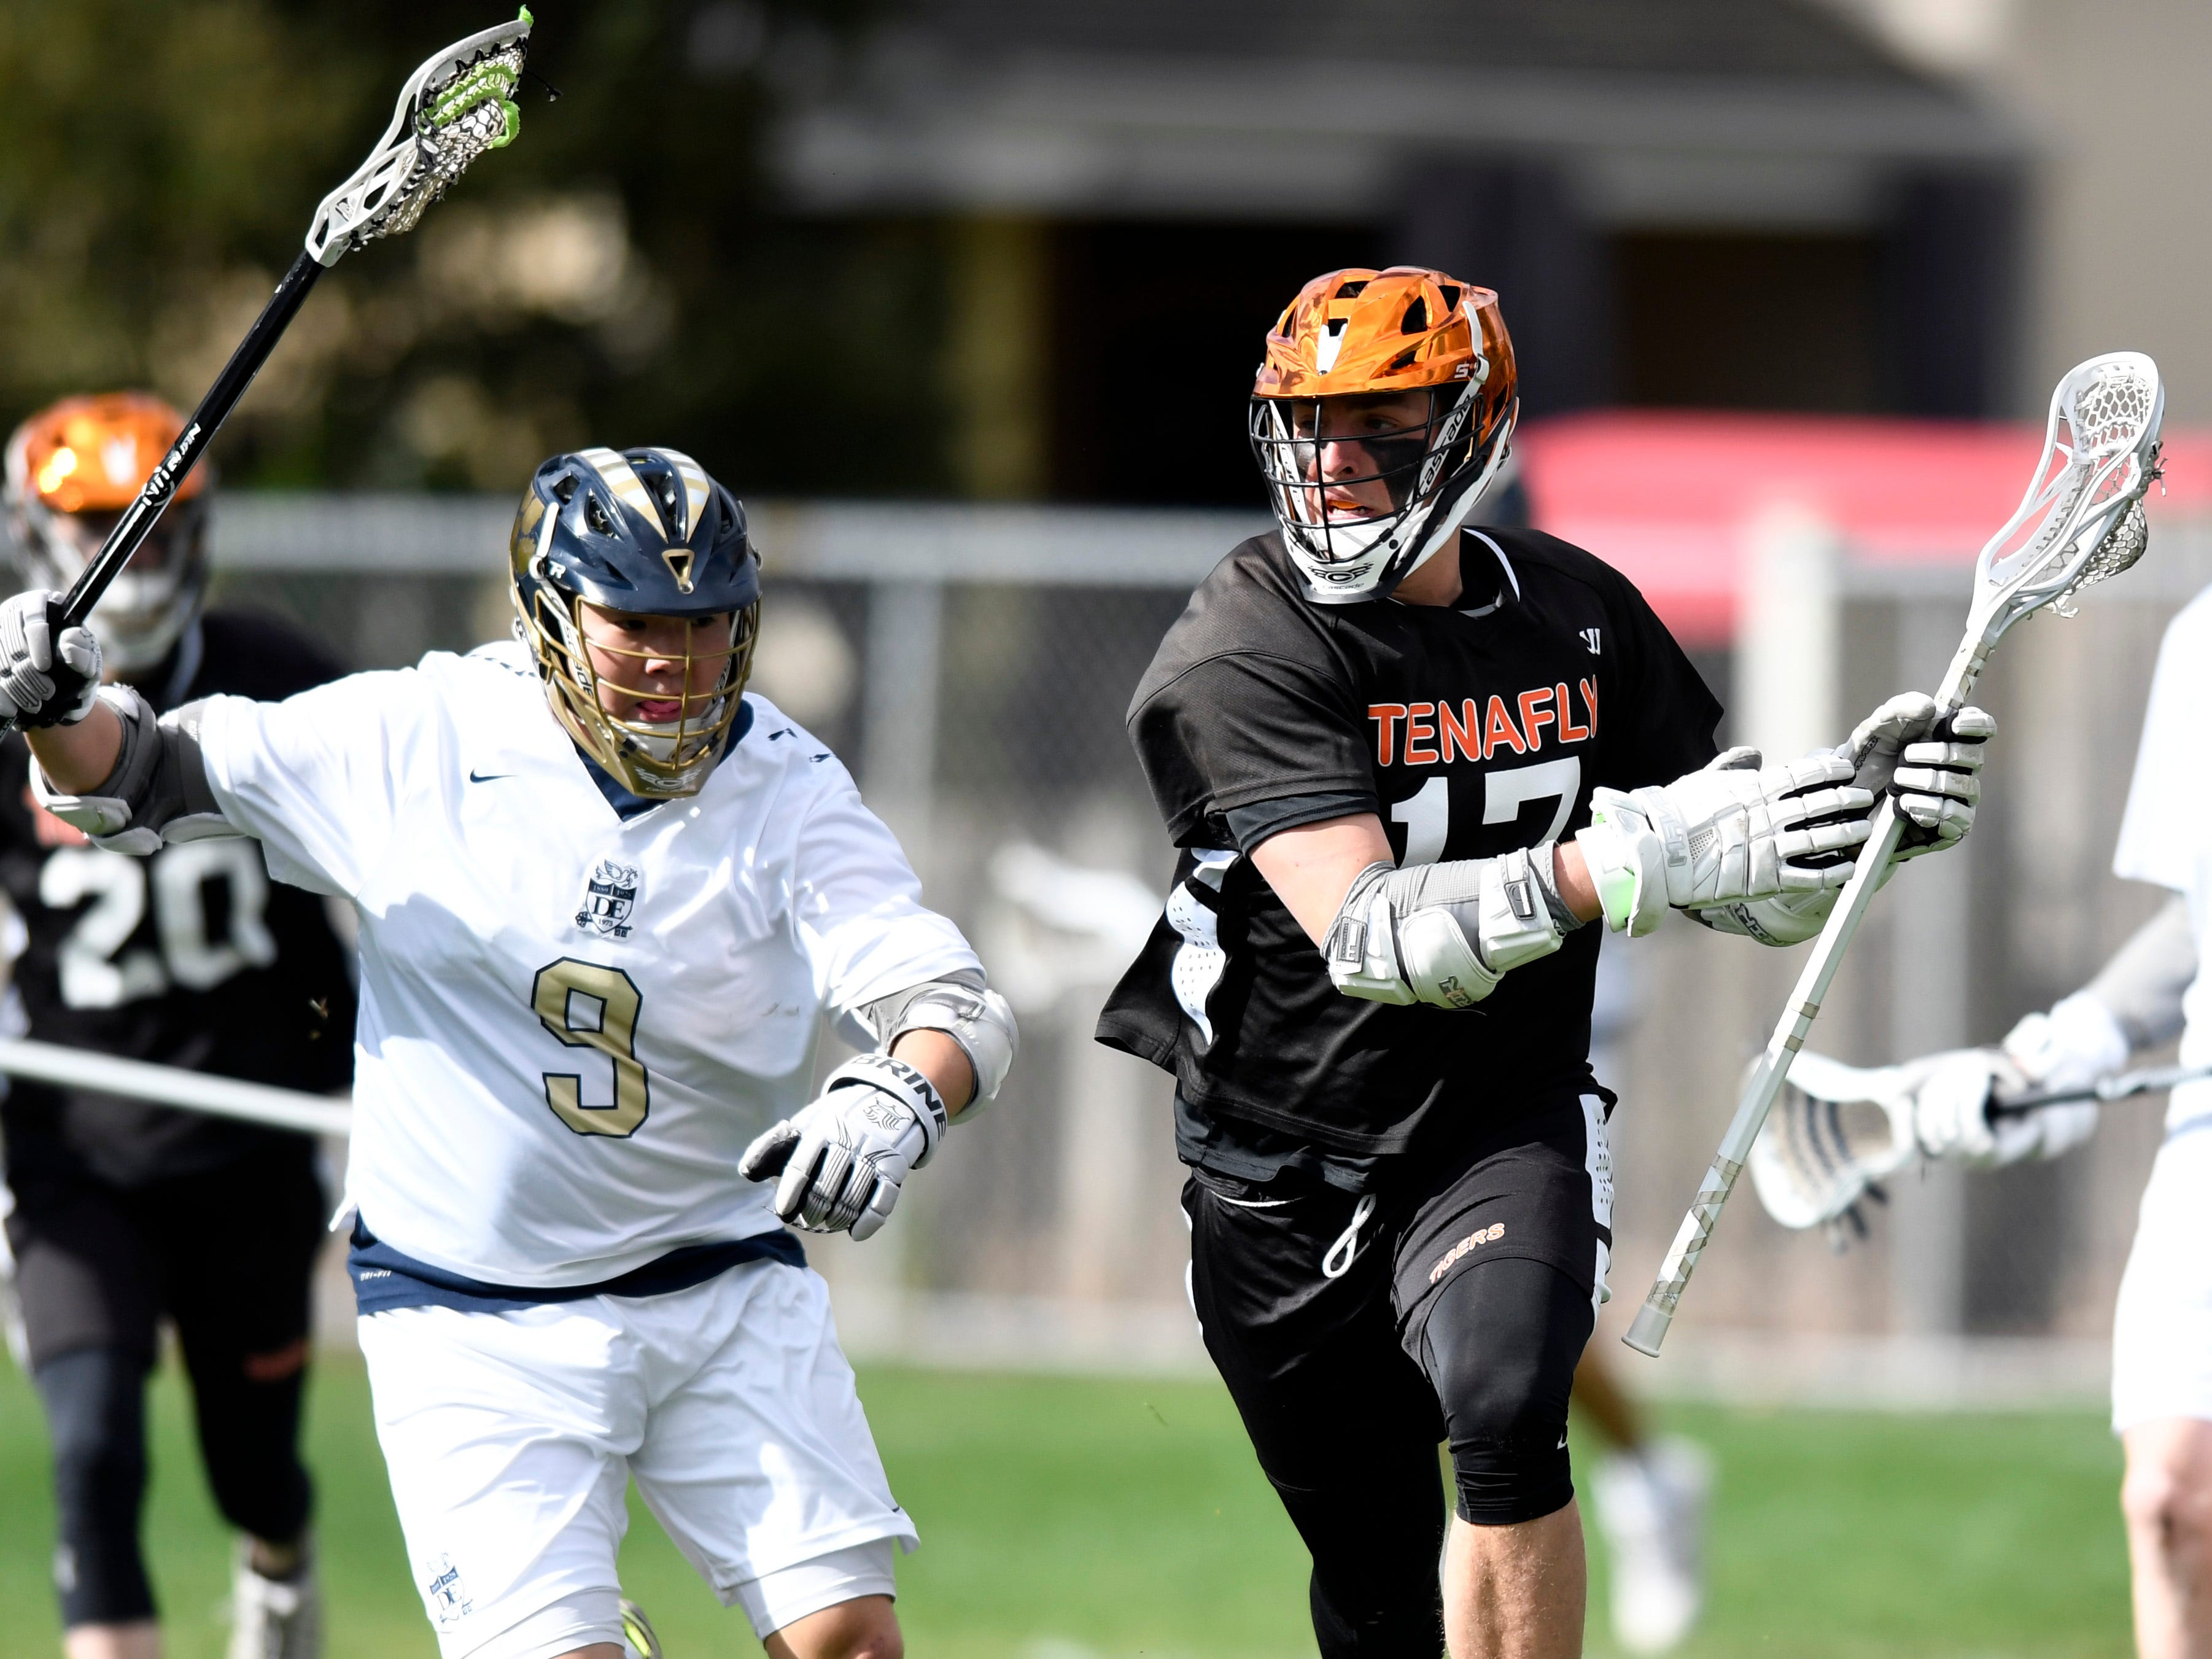 Tenafly's Jeremy Abramowitz, right, runs with pressure from Dwight-Englewood's Matt Park on Monday, April 15, 2019, in Englewood.